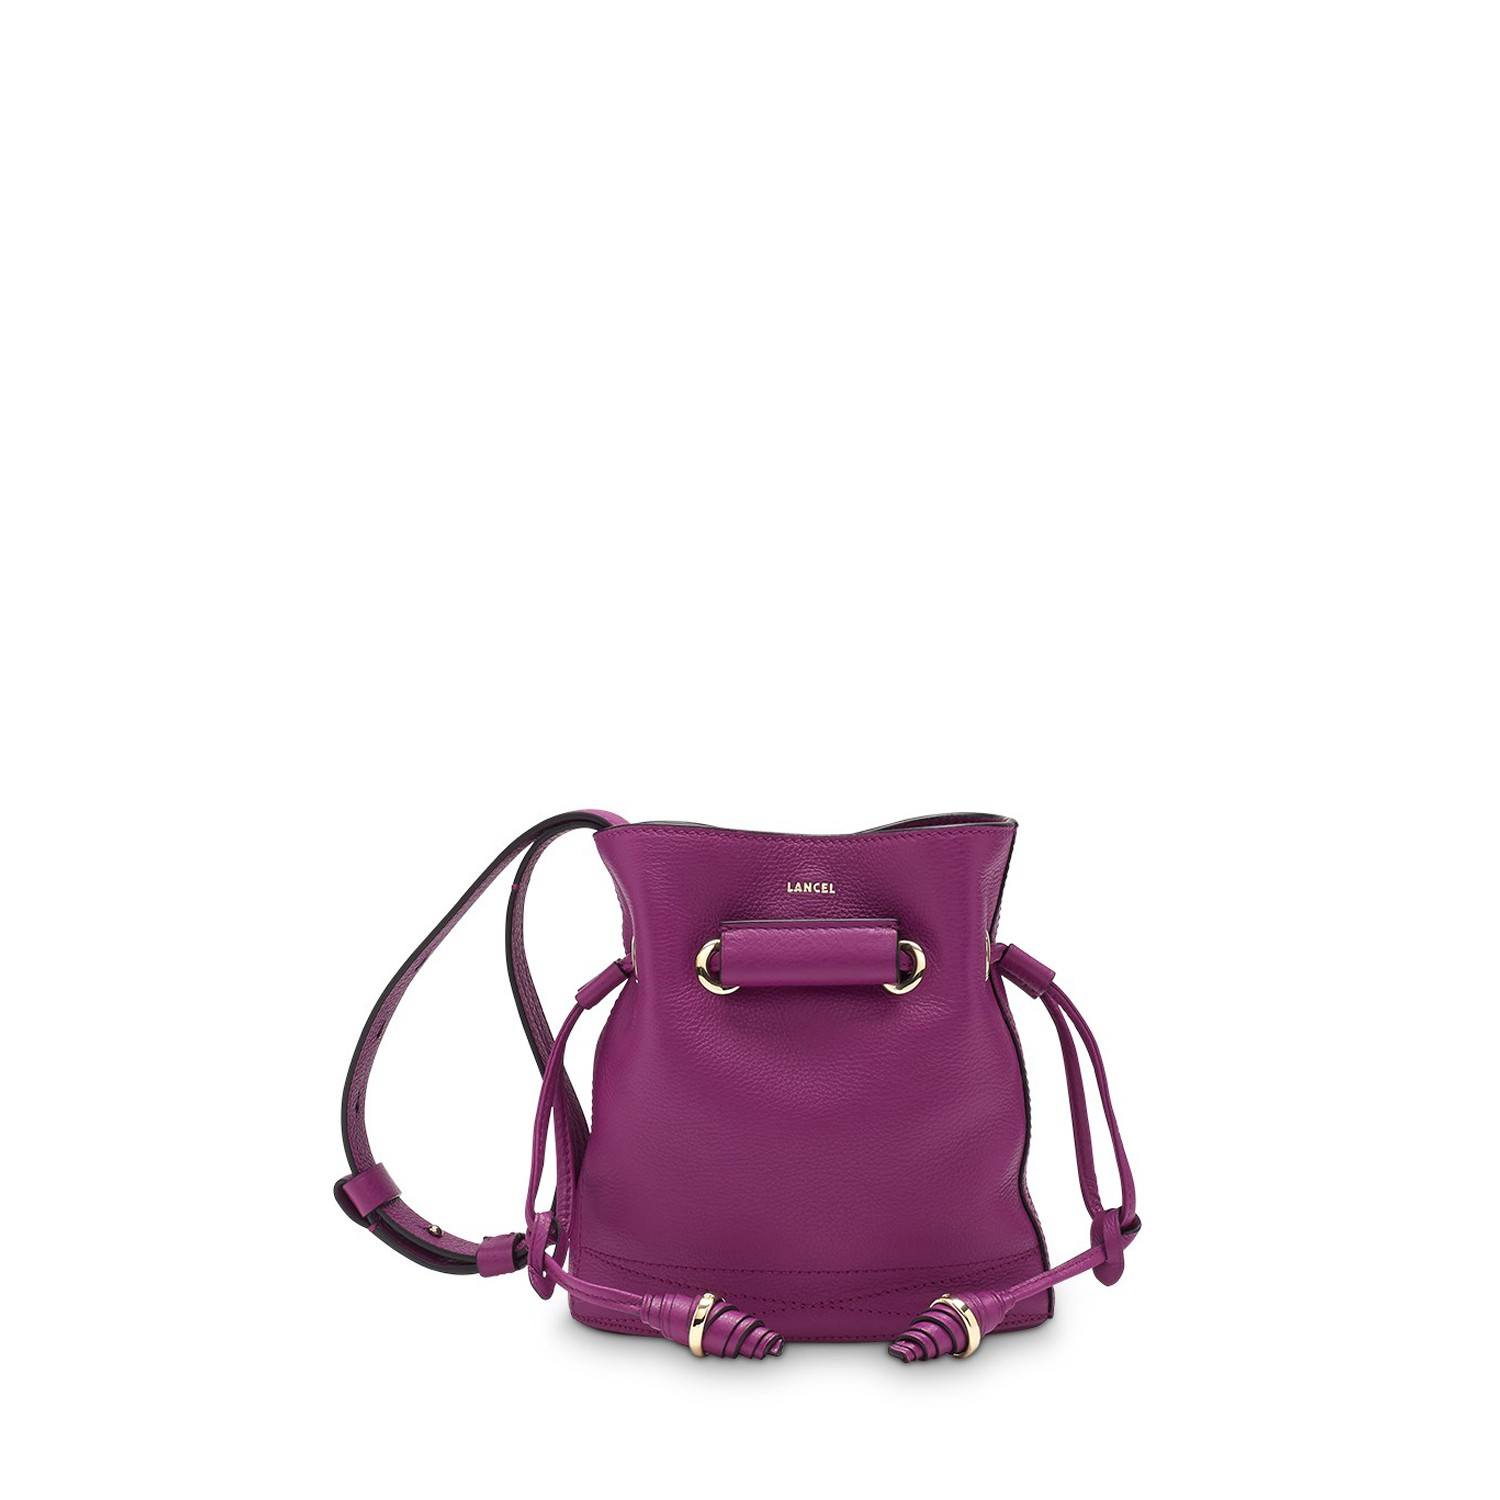 Le Huit de Lancel Bucket bag Dahlia